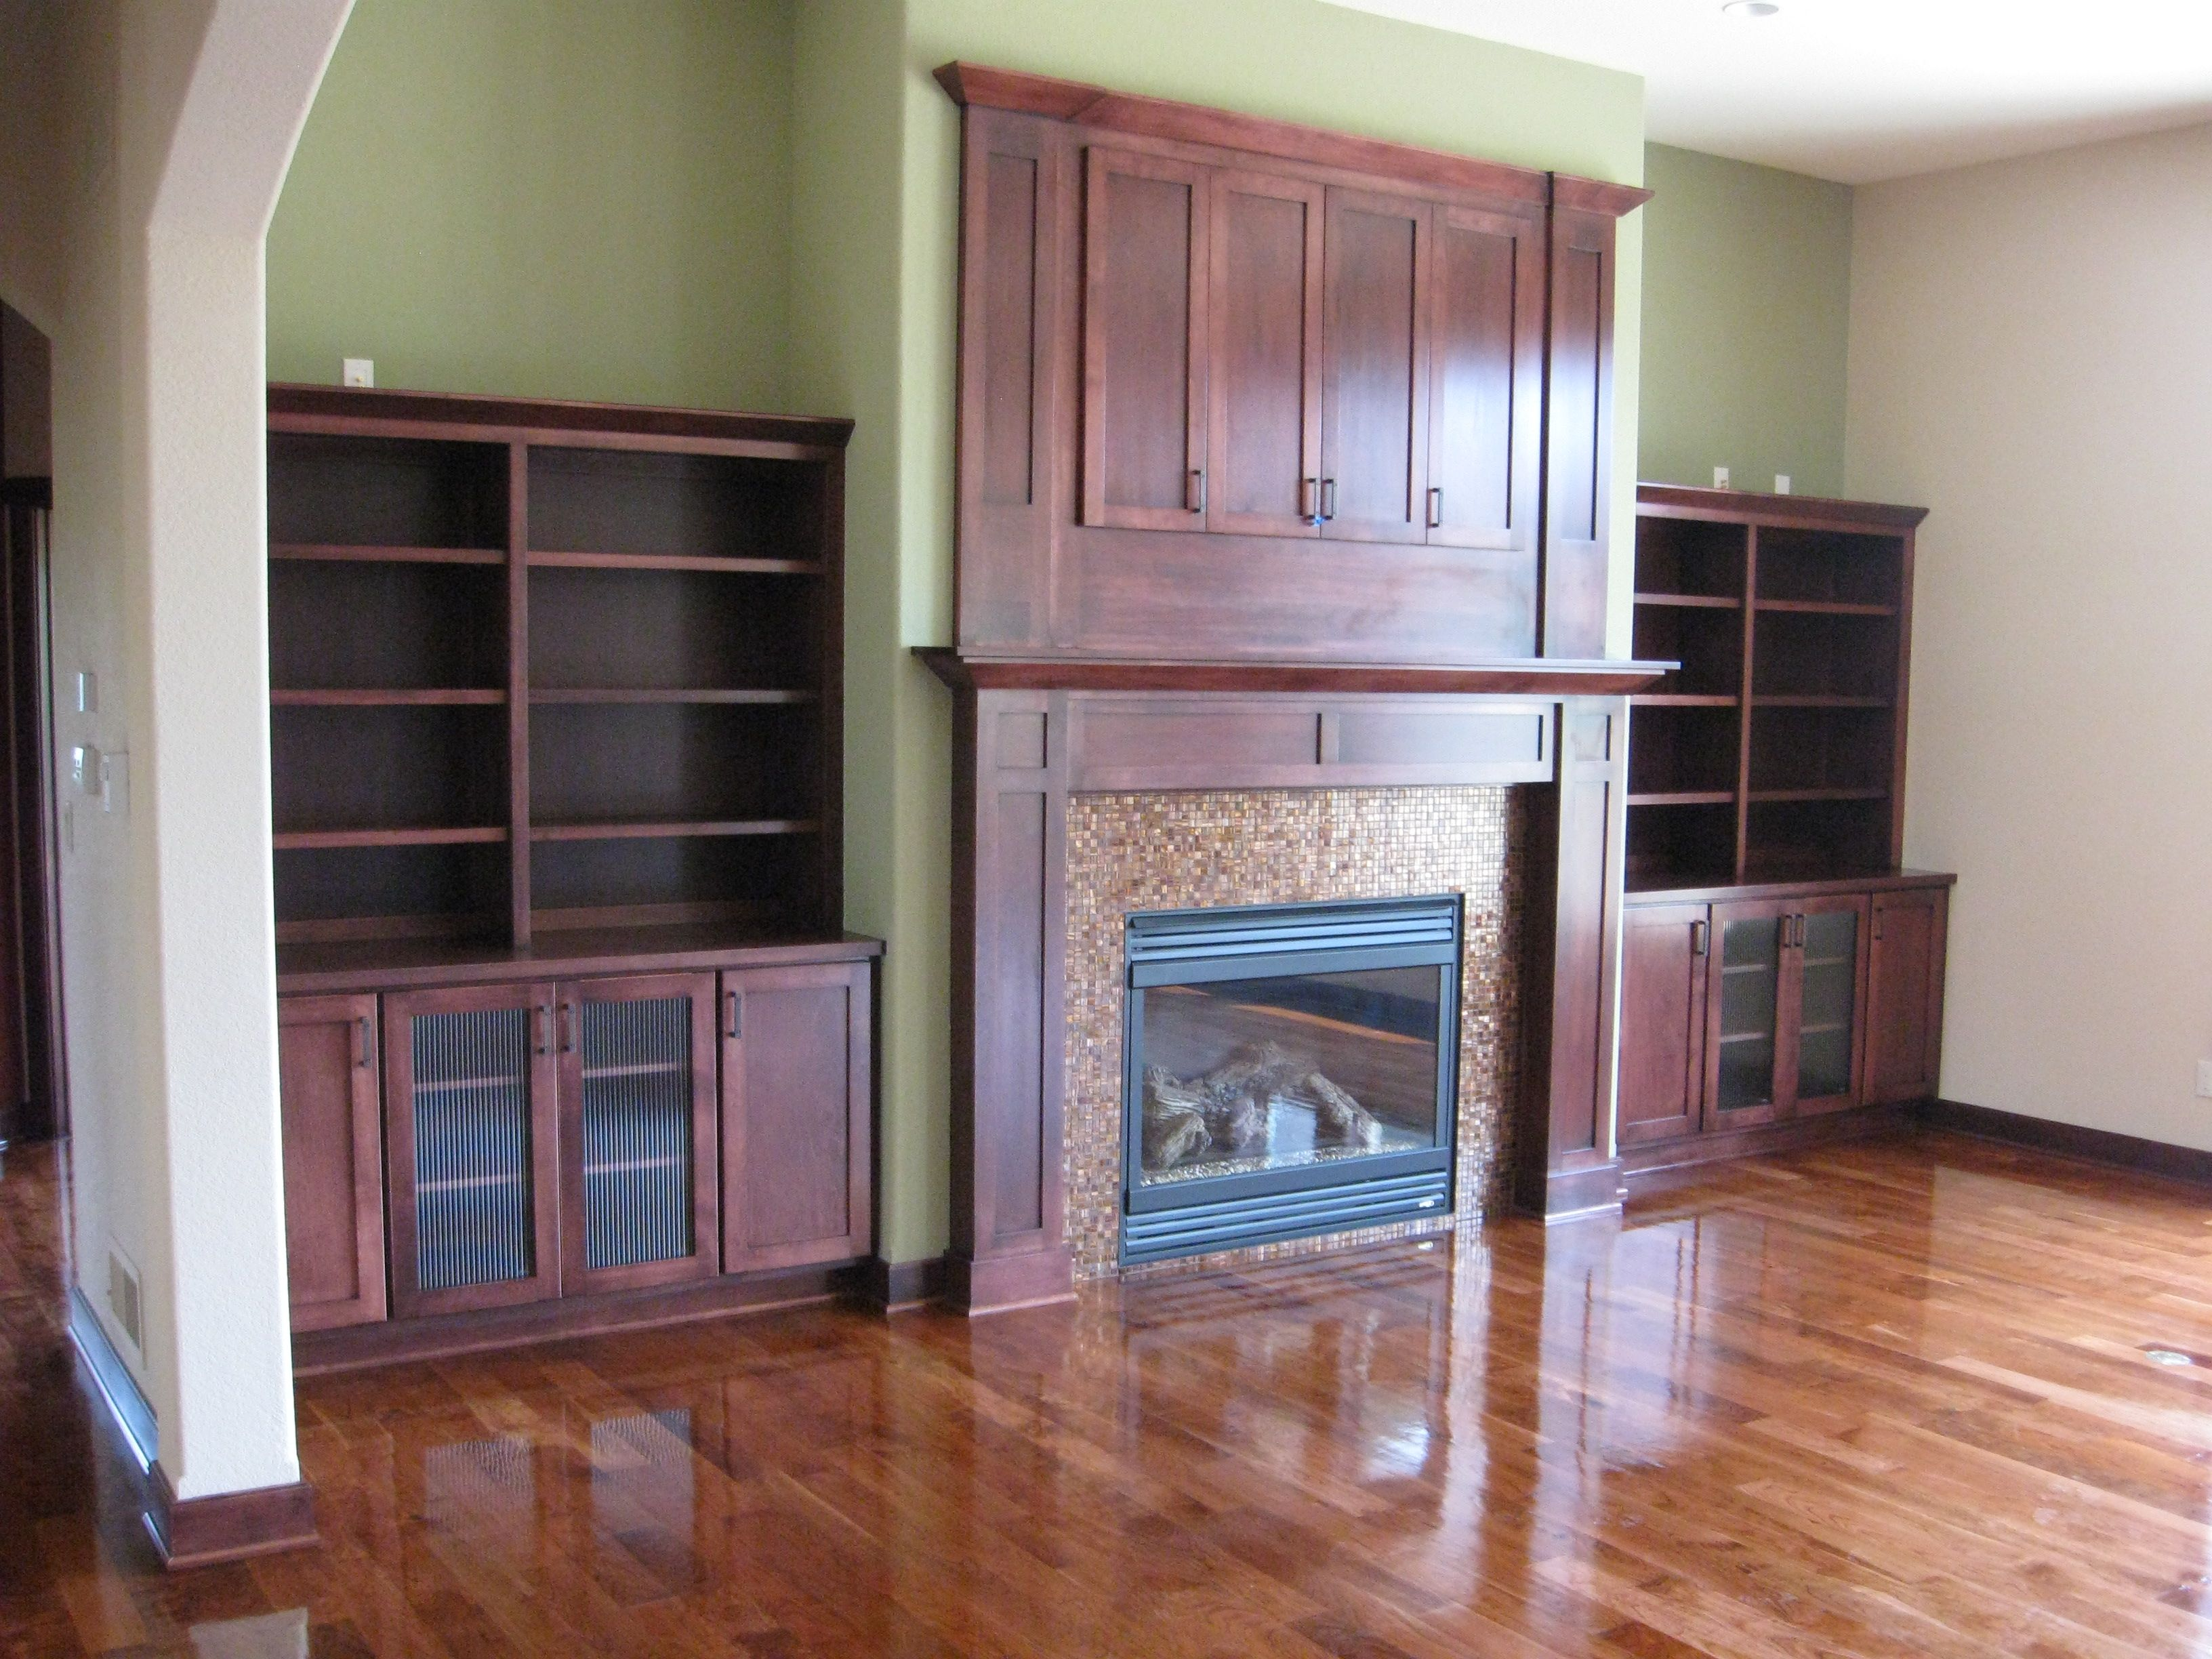 Having built in shelving and cabinets on each side of the fireplace